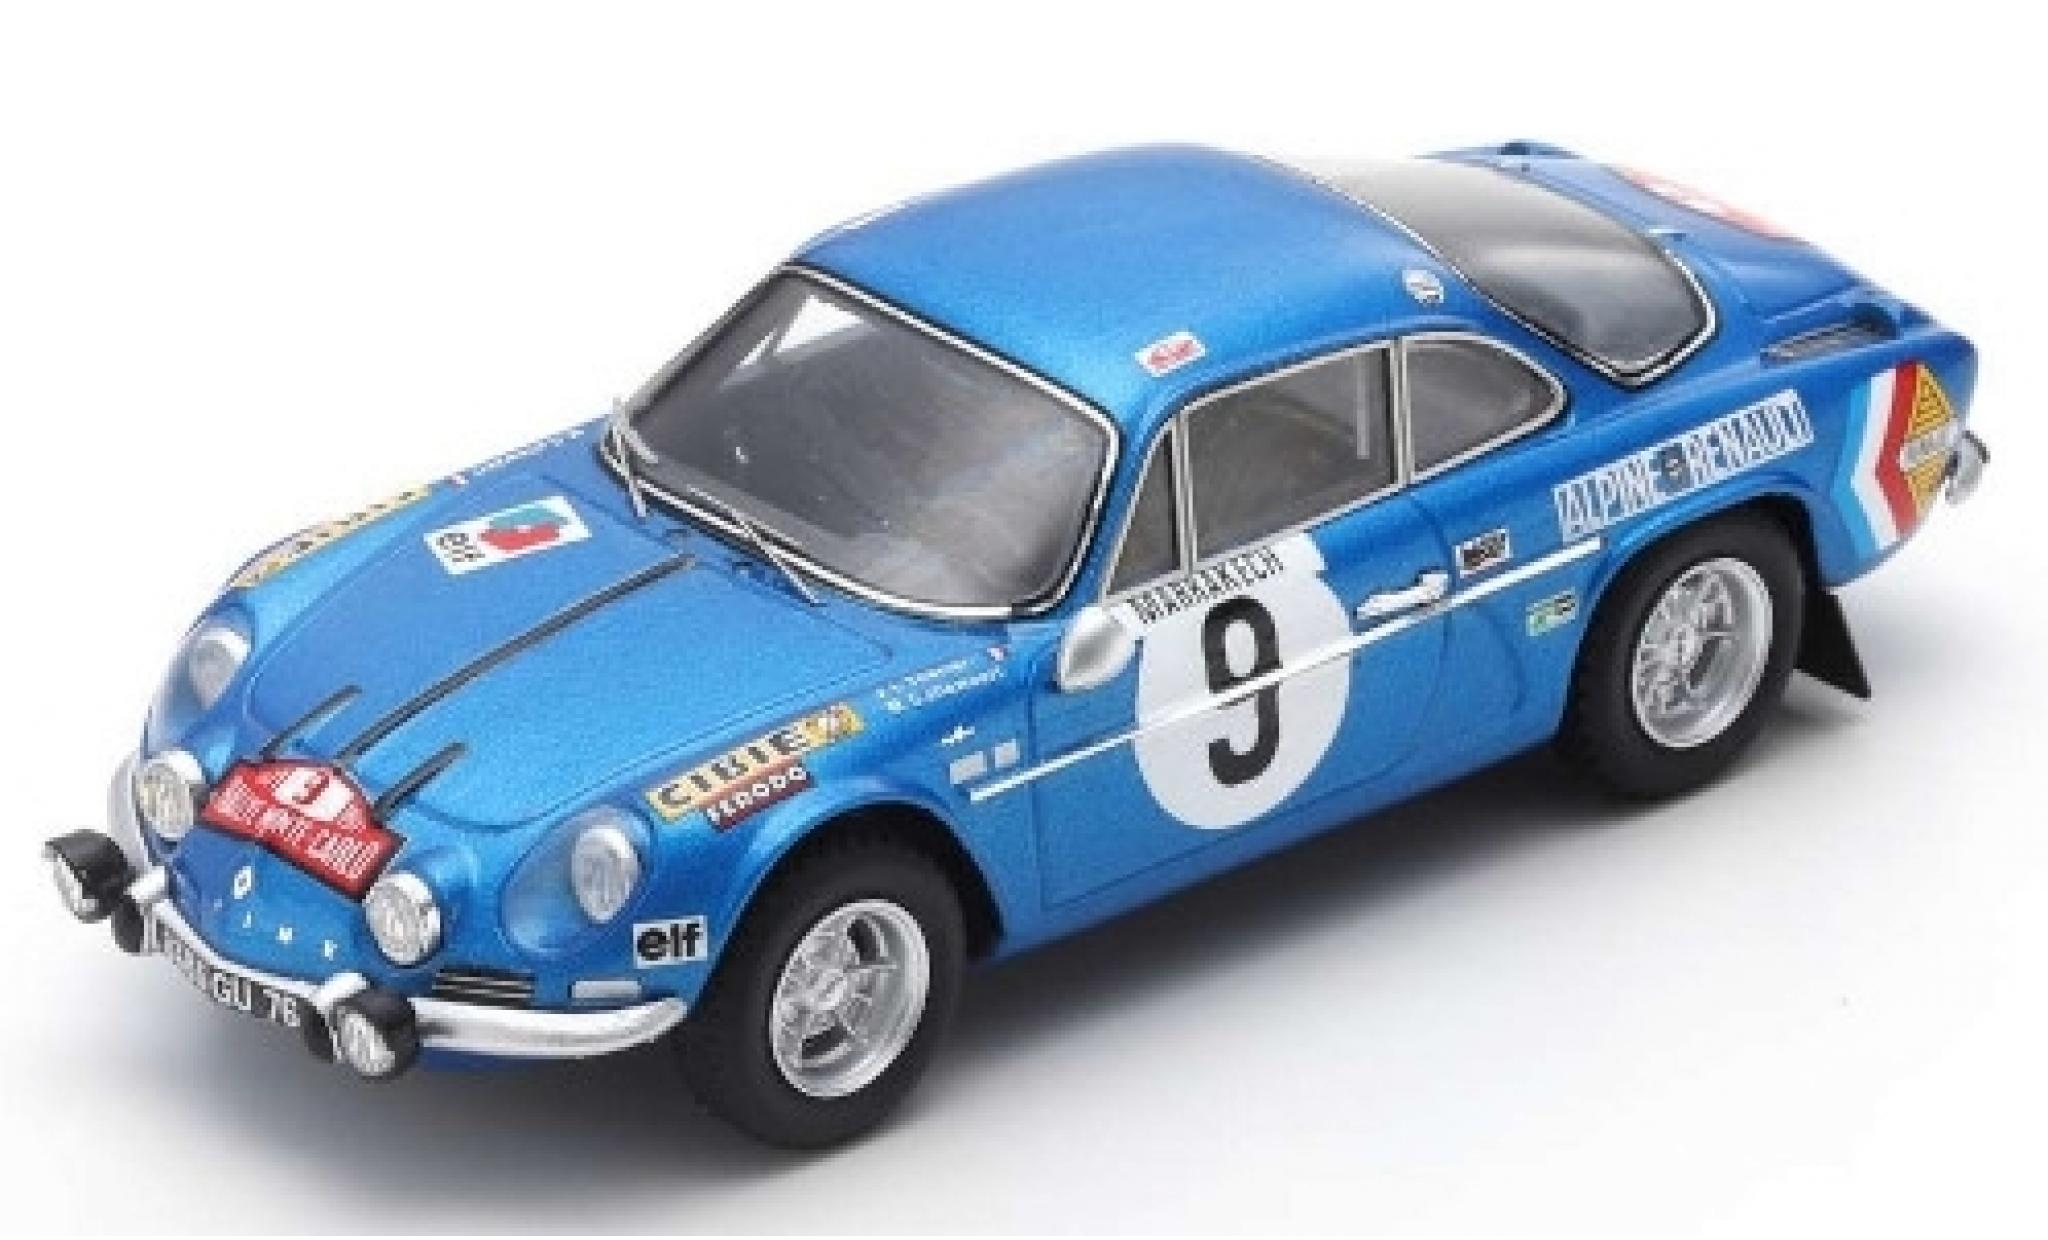 Alpine A110 1/43 Spark Renault No.9 Rally Monte Carlo 1971 J-L.Therier/M.Callewaert